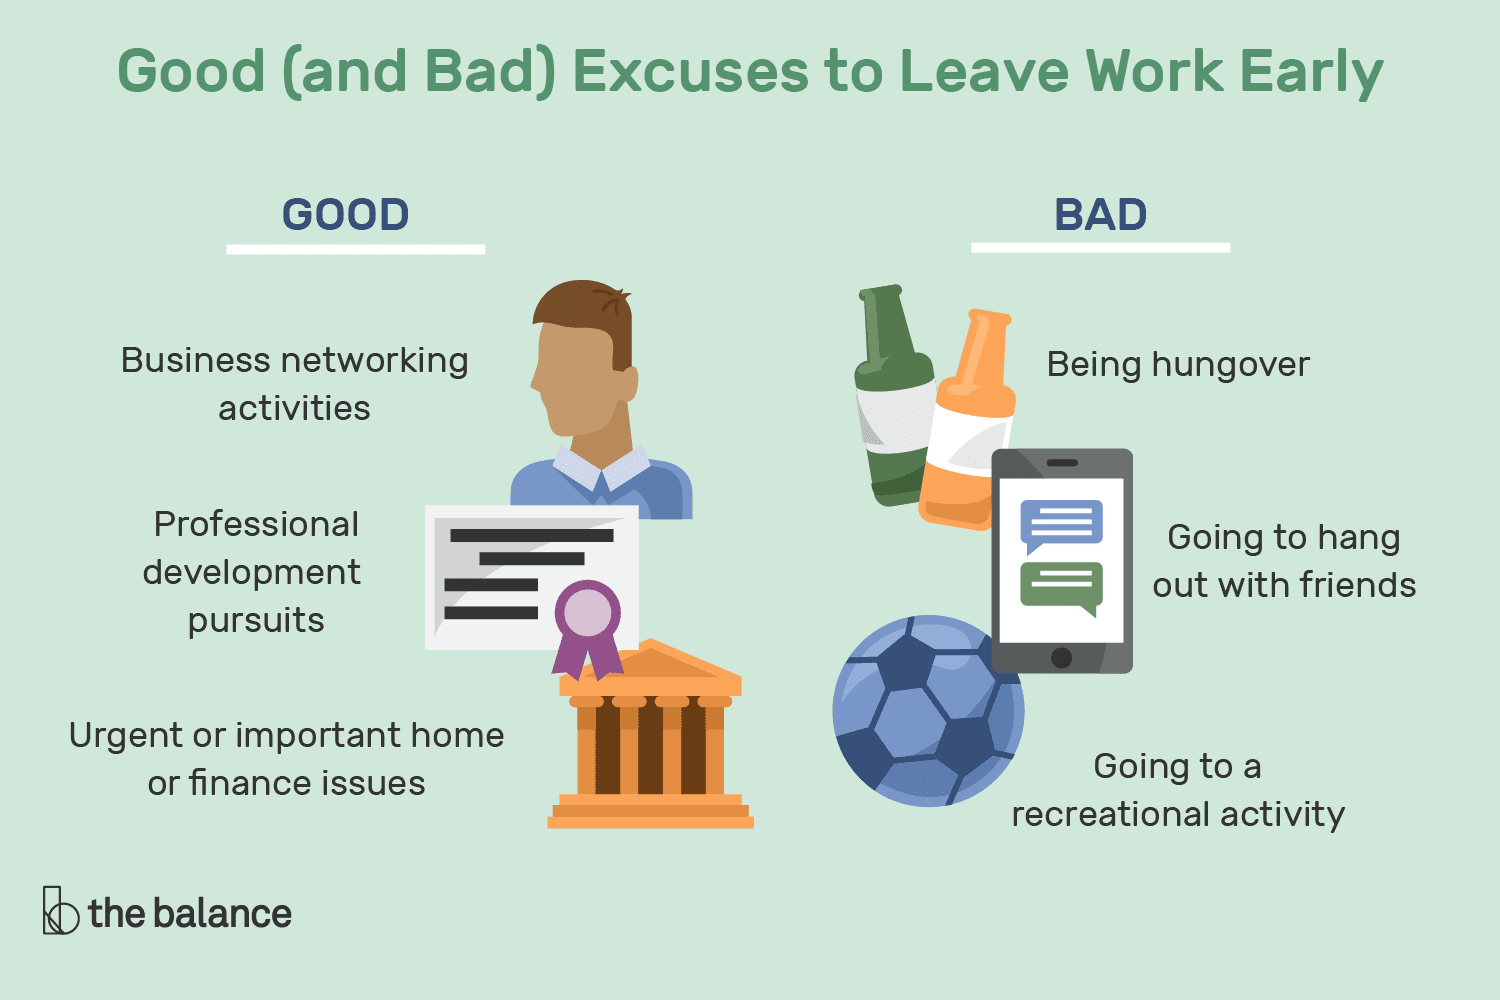 Reasons to Leave Work Early (Good and Bad Excuses)